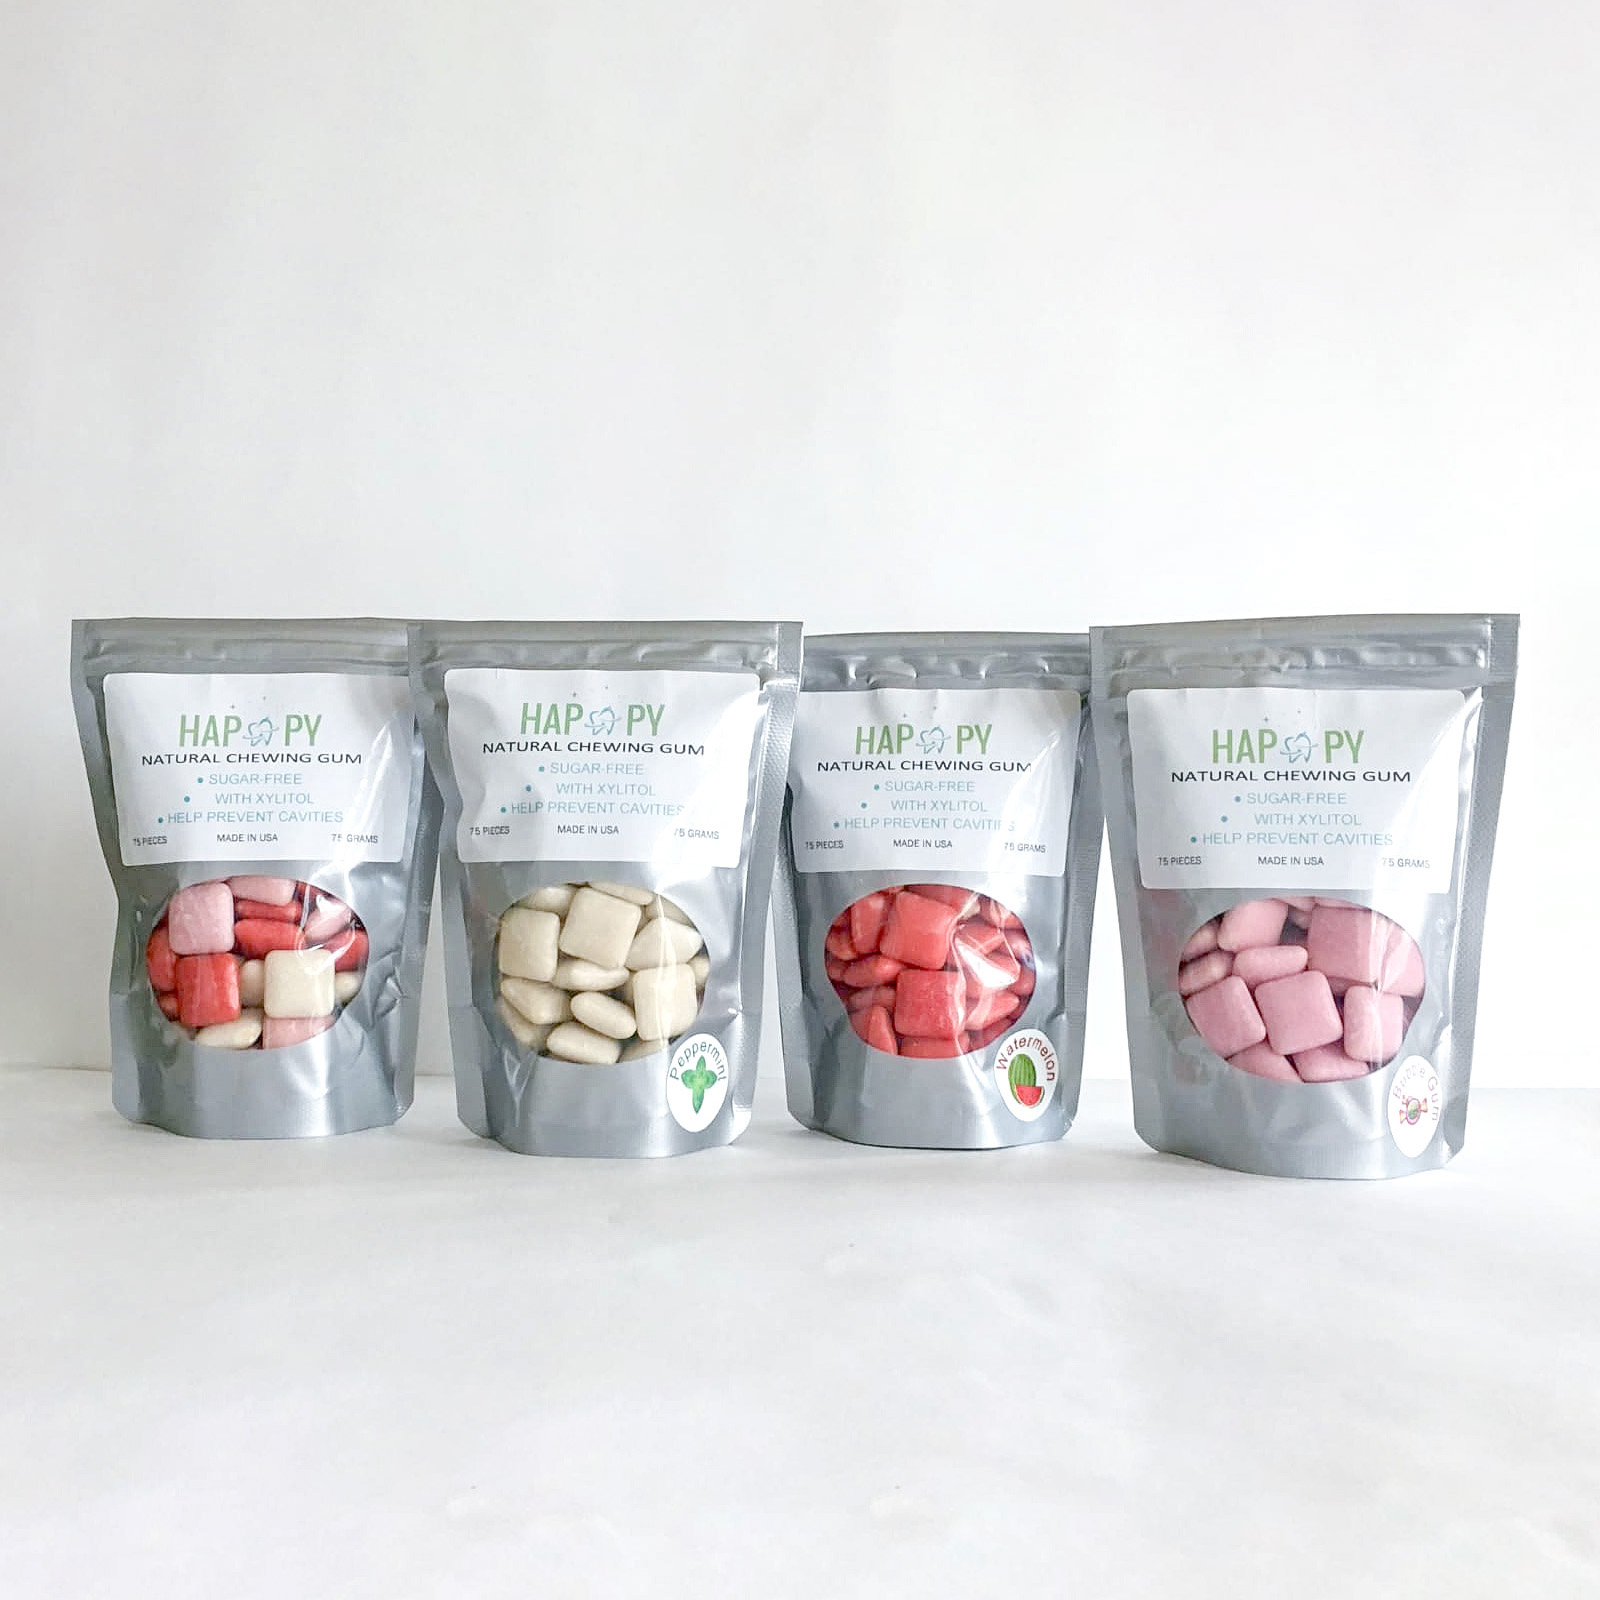 Natural Chewing Gum Sugar-Free with Xylitol - Flavors:PeppermintBubble GumWatermelonAssorted MixIt is a perfect compliment to our HAPPY Tooth Powder, Tooth Paste, and Mouth Rinse. Gum will help prevent cavities and increase saliva production while chewing between meals.* no artificial colors, flavors, sweeteners, or preservatives